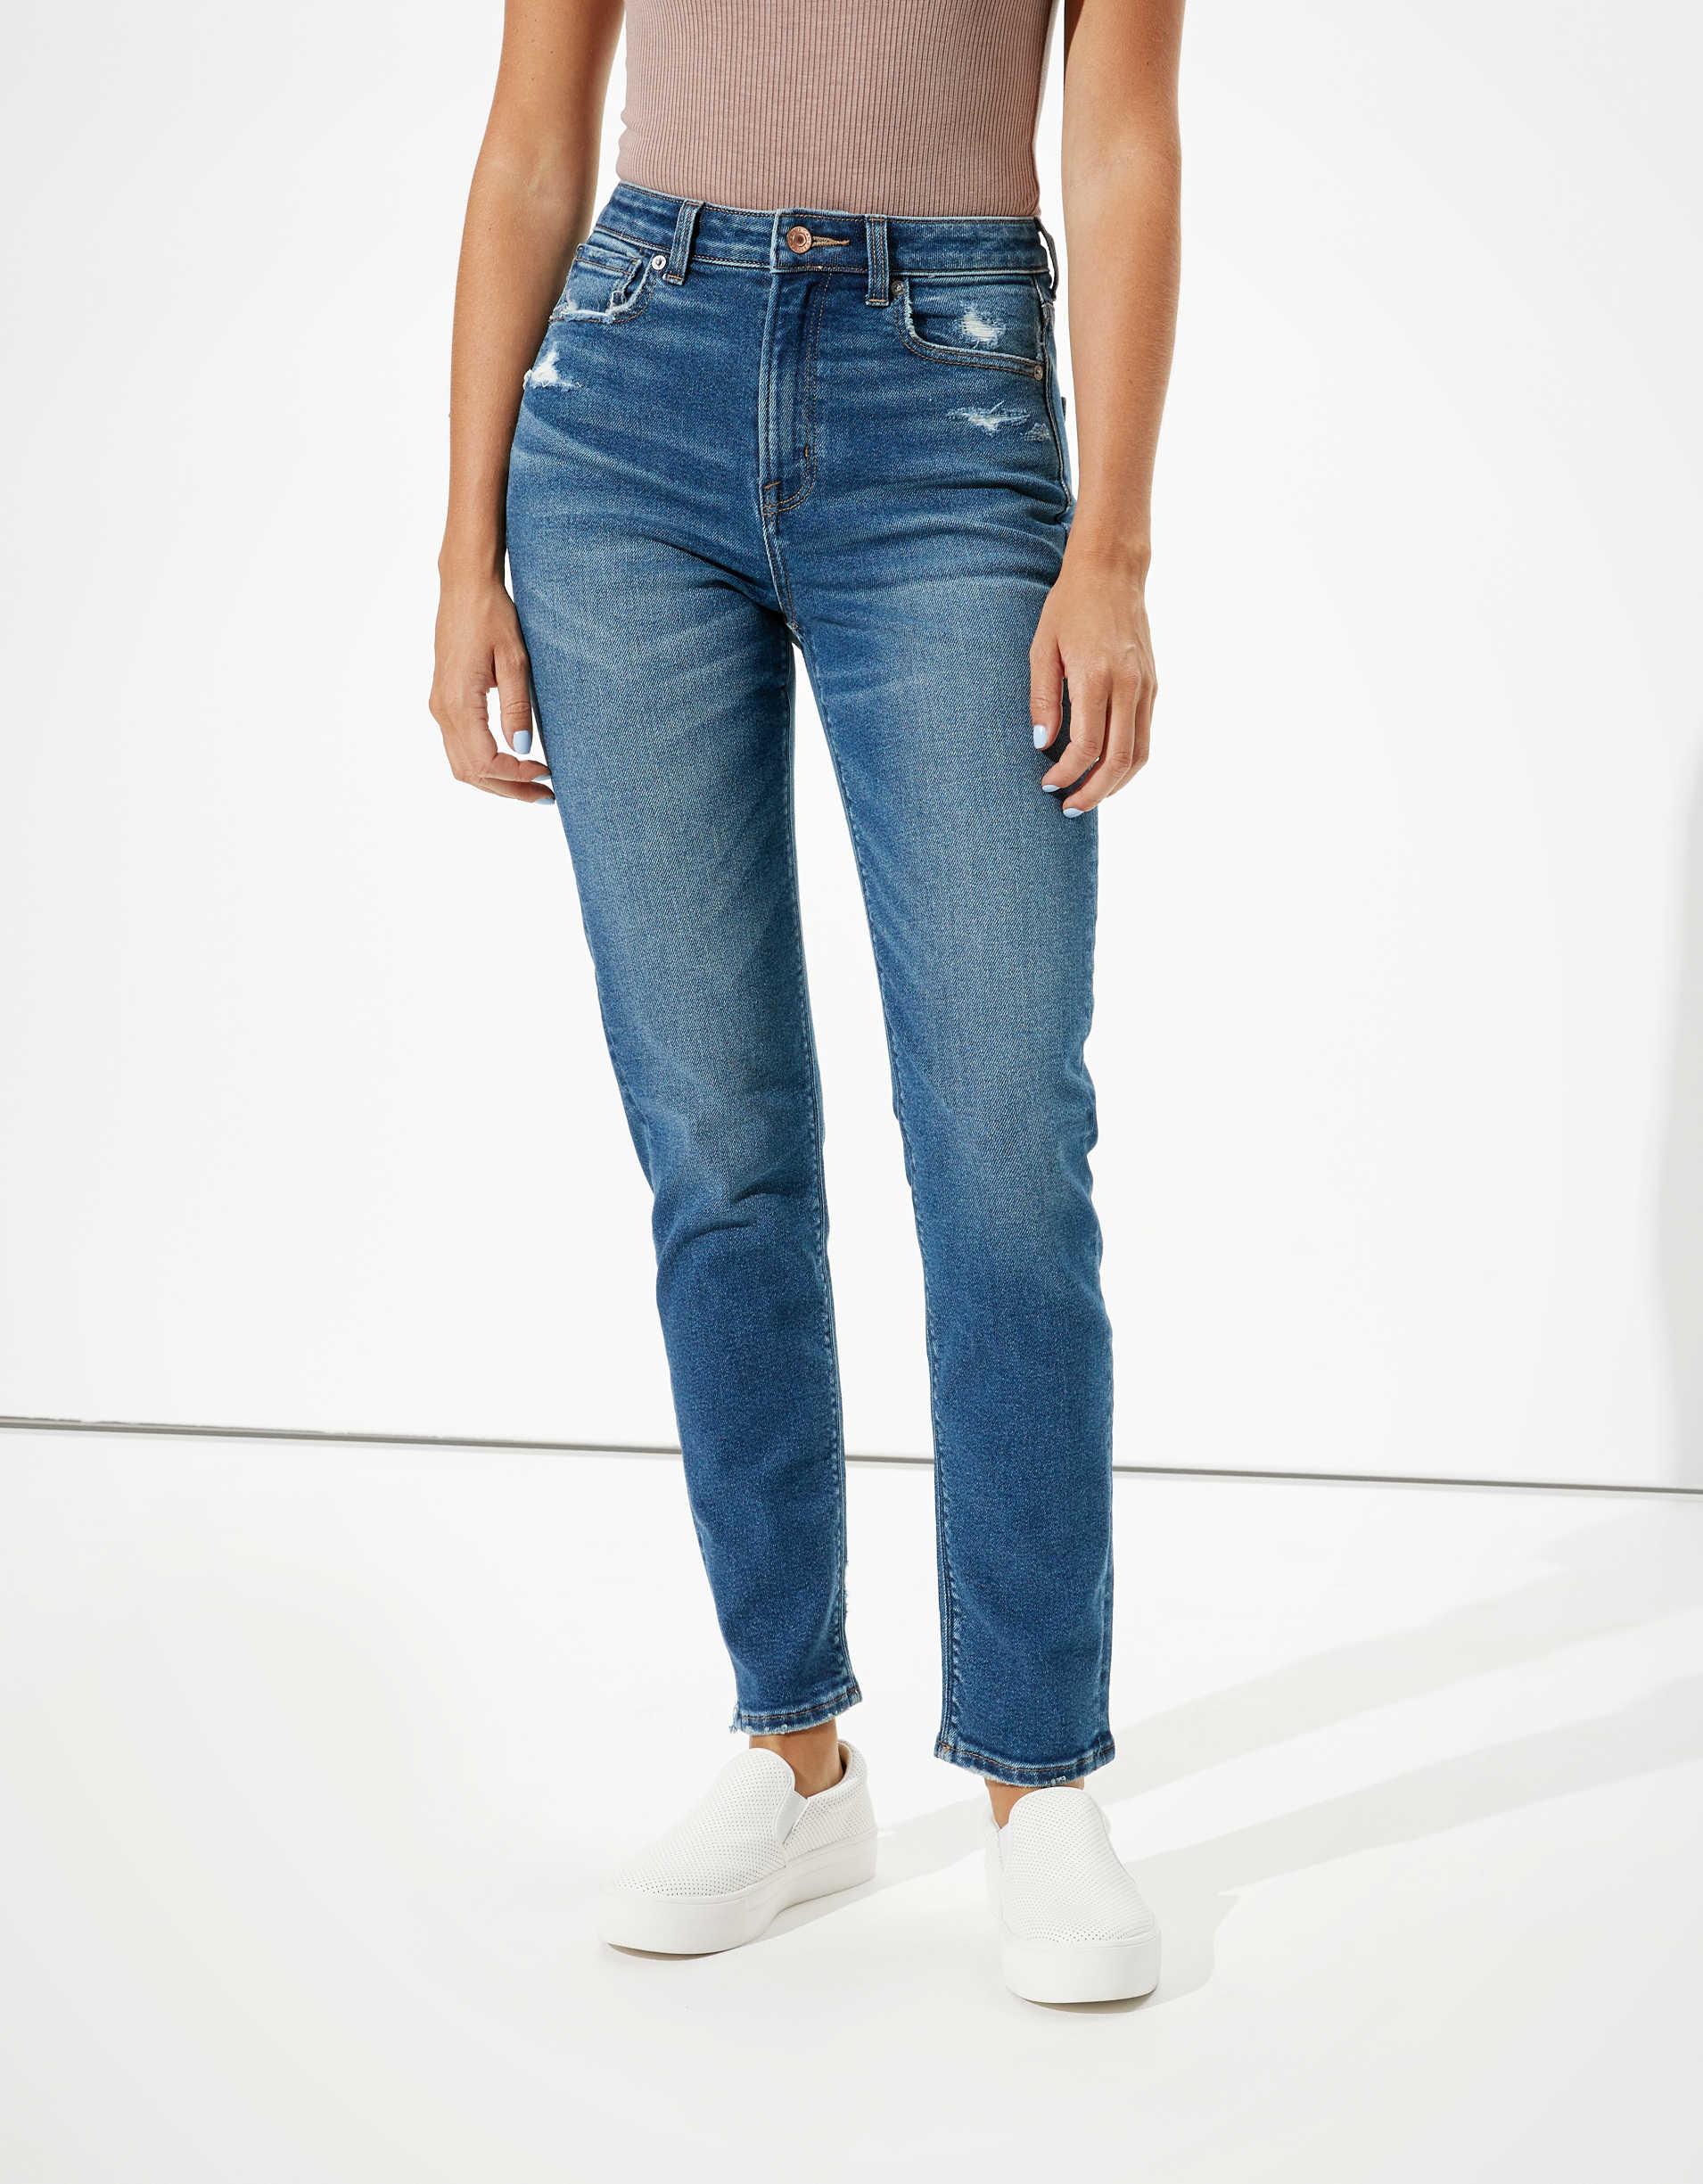 Model wearing the jeans in blue with a high waist and tapered leg